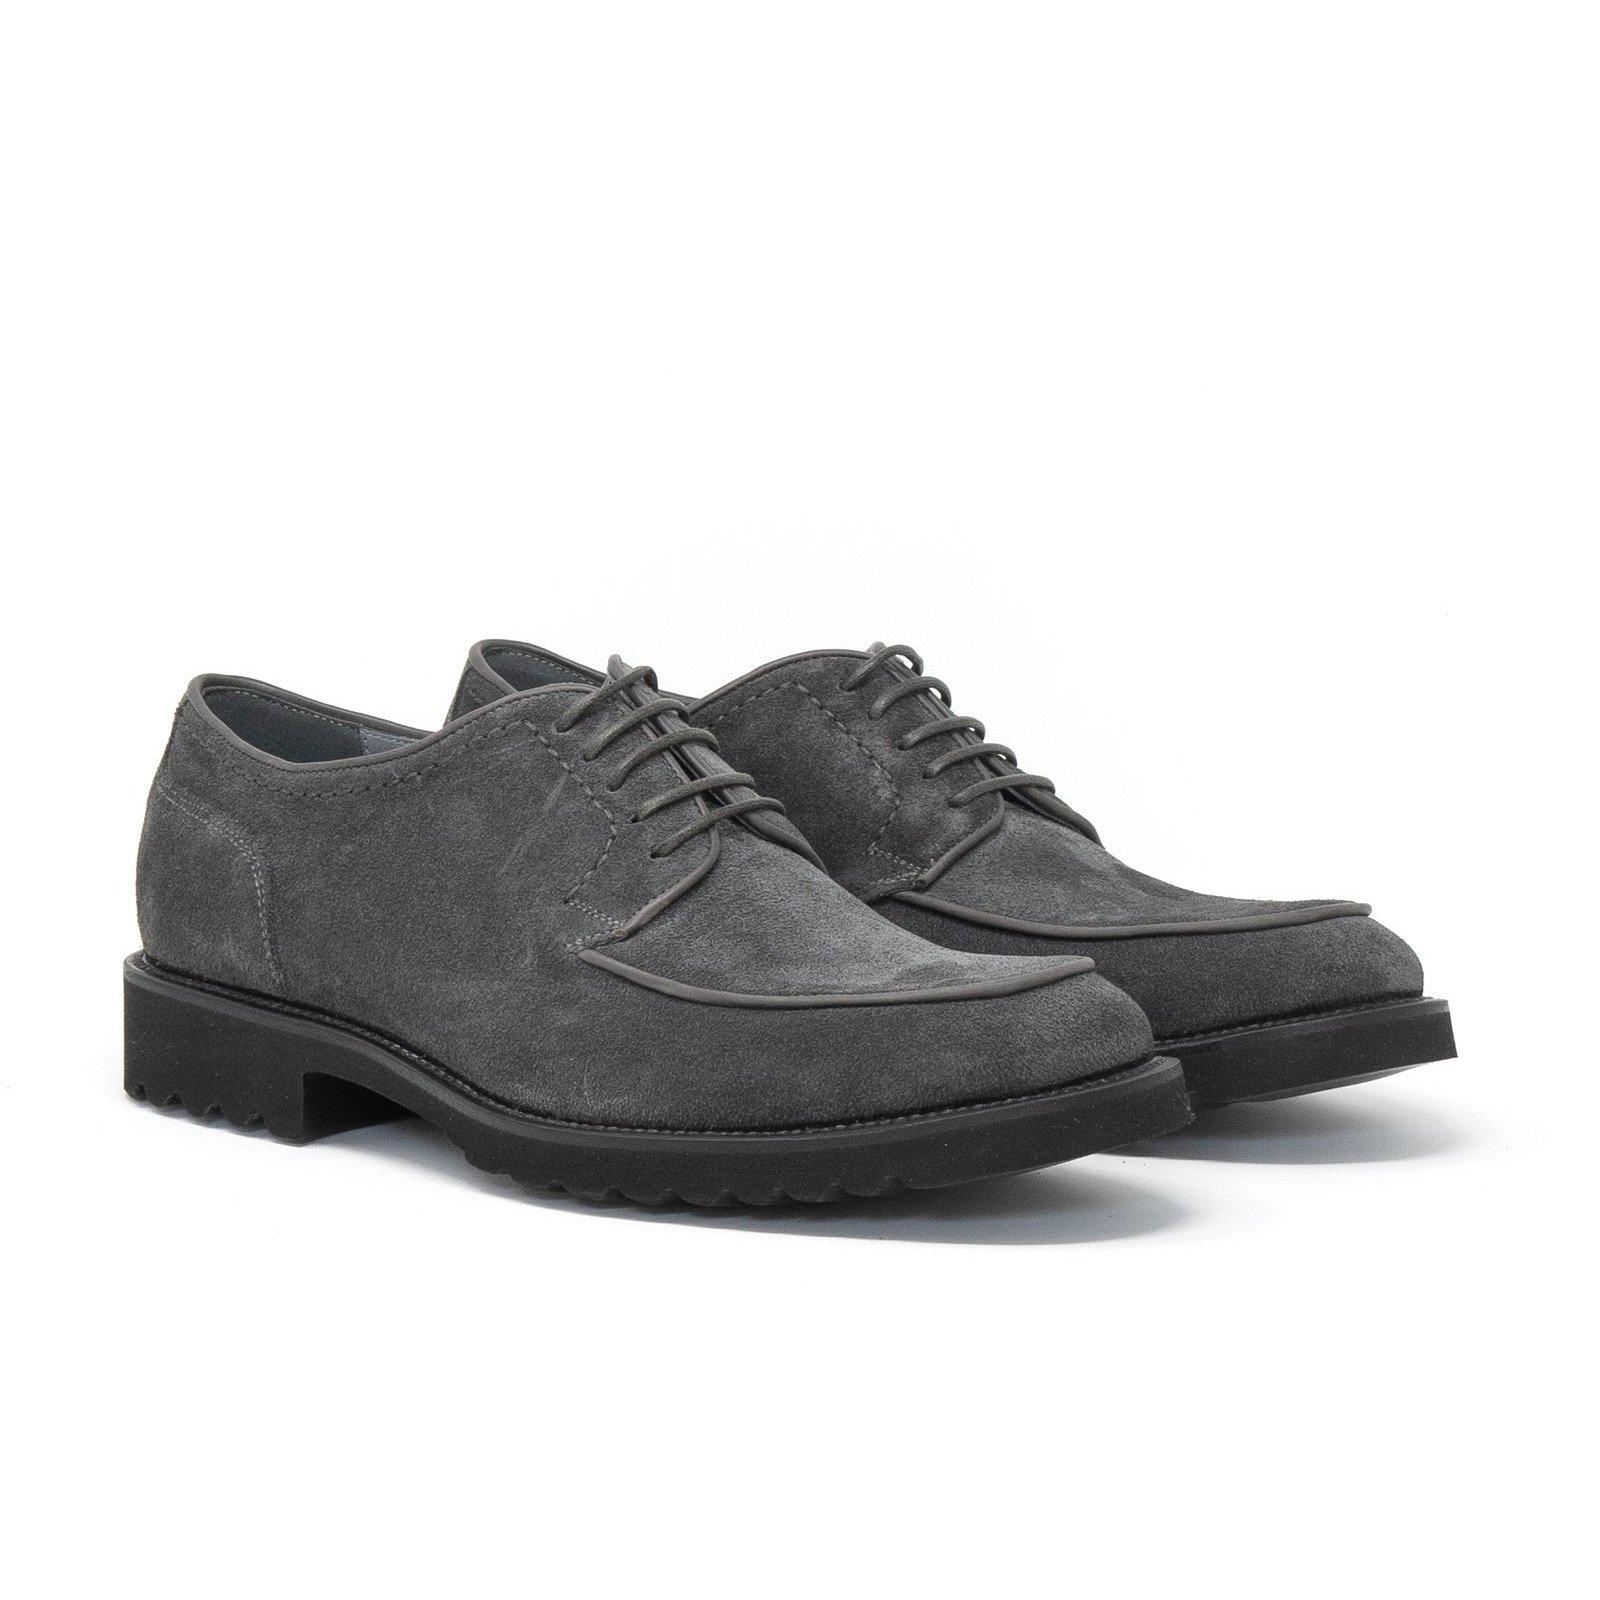 Lace Up Men Shoes - Jennifer Tattanelli Signature Collection - Jennifer Tattanelli